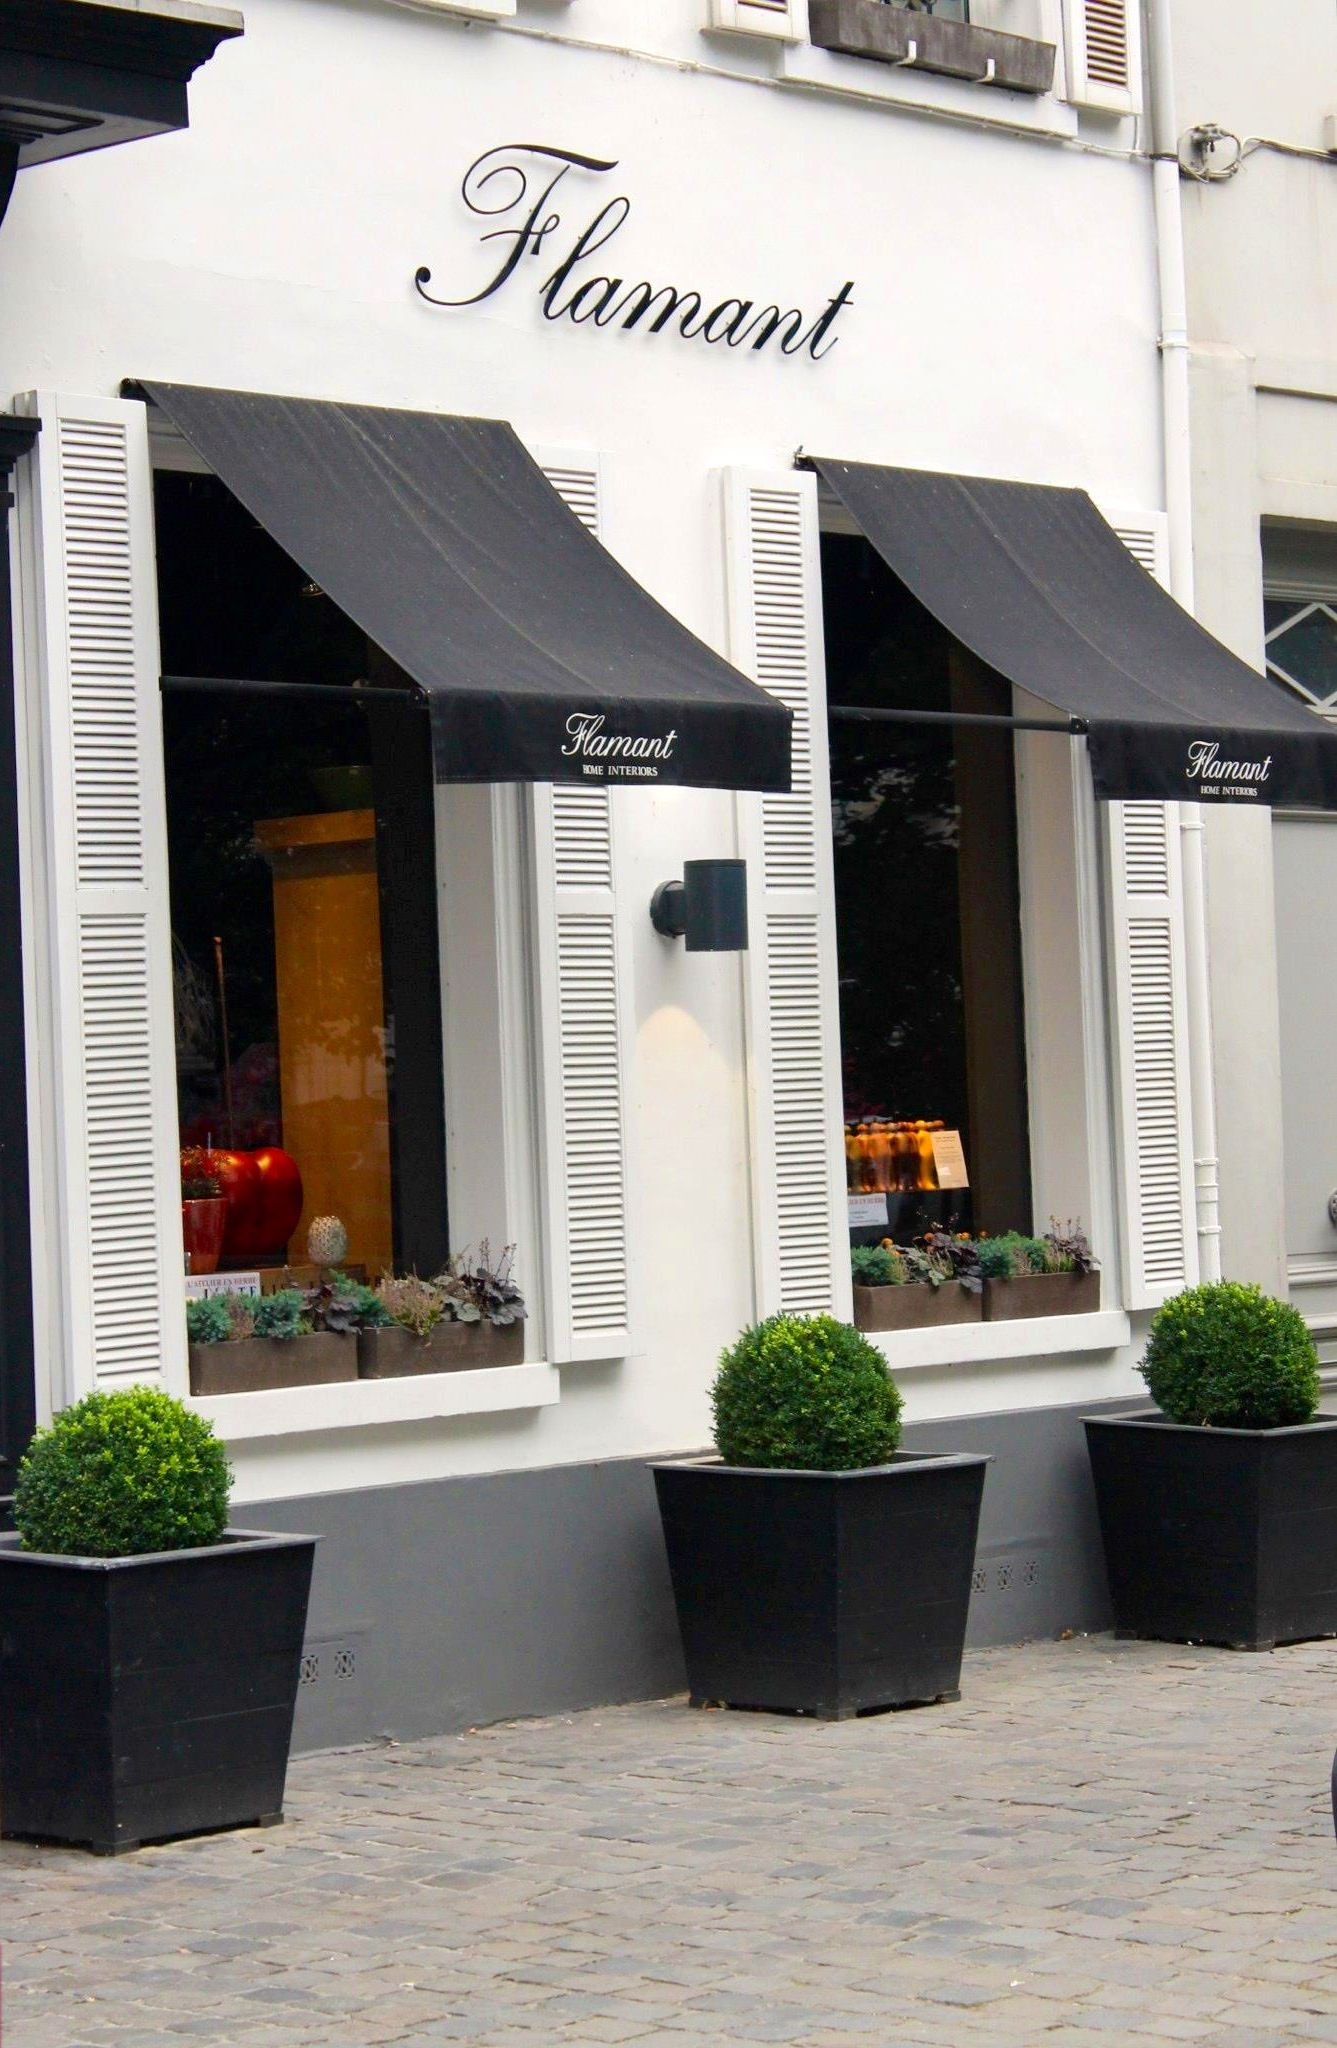 Flamant shop Bruxellesu003du003donce again the canopies and planters make all the & Flamant shop Bruxellesu003du003donce again the canopies and planters ...